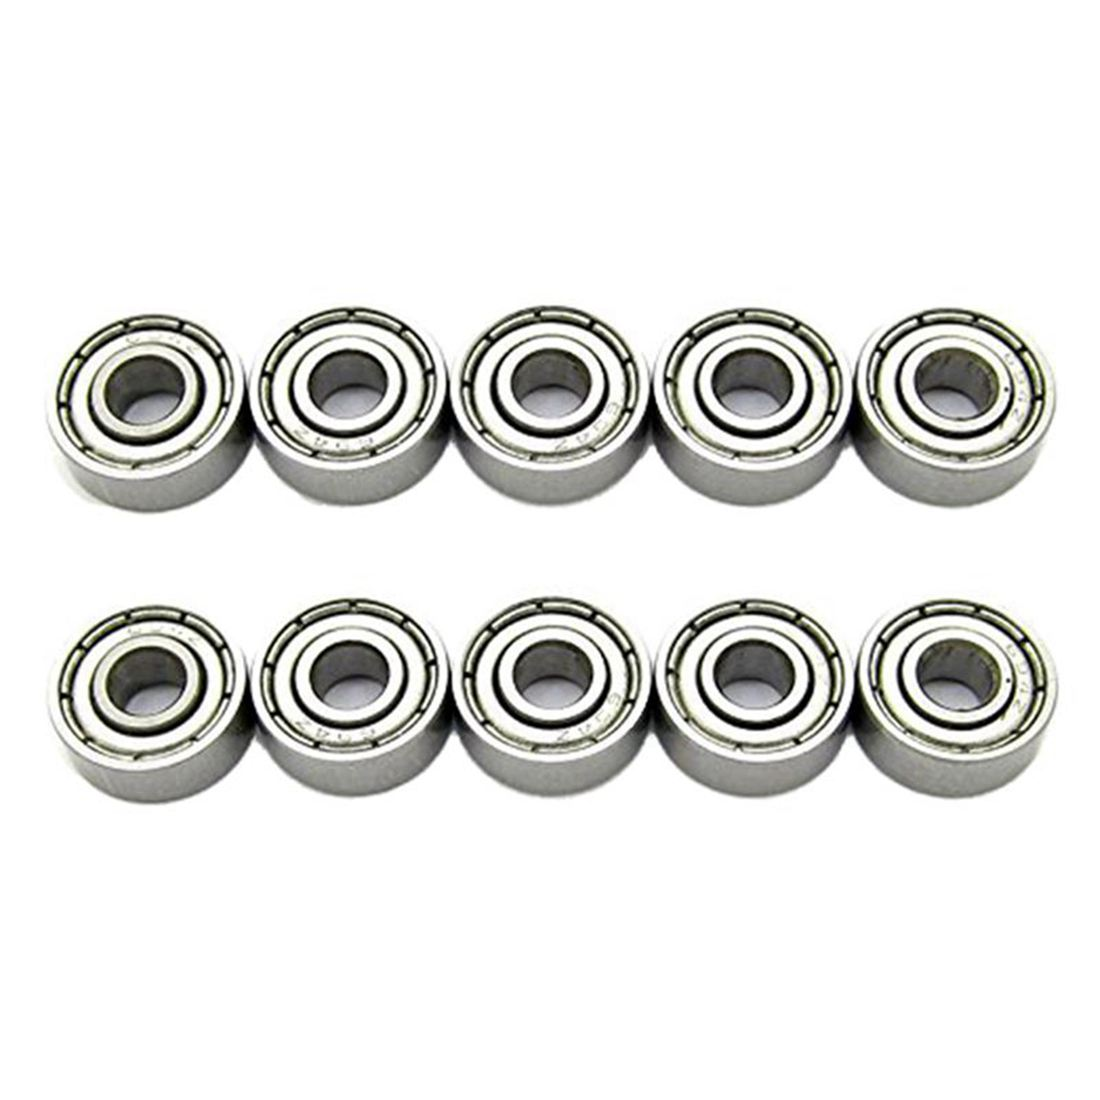 694ZZ 694Z Deep Groove Miniature Ball Bearing 4x11x4mm Miniature Bearings 10 PCS